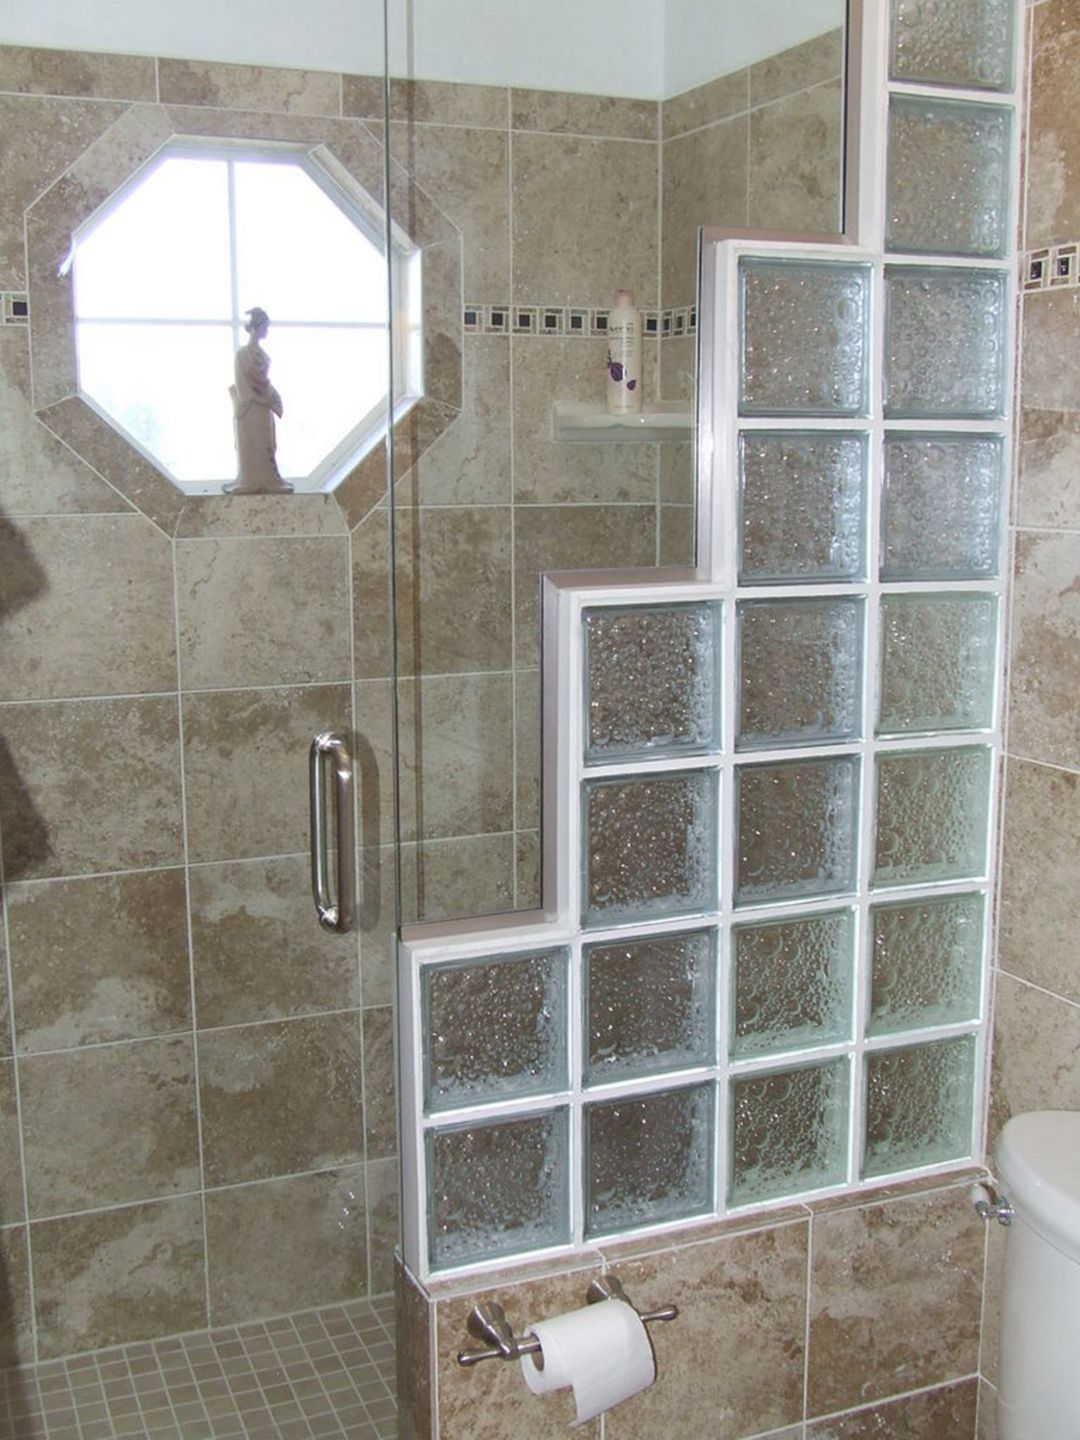 Pin By Marina Juaneu On Banos In 2020 Glass Block Shower